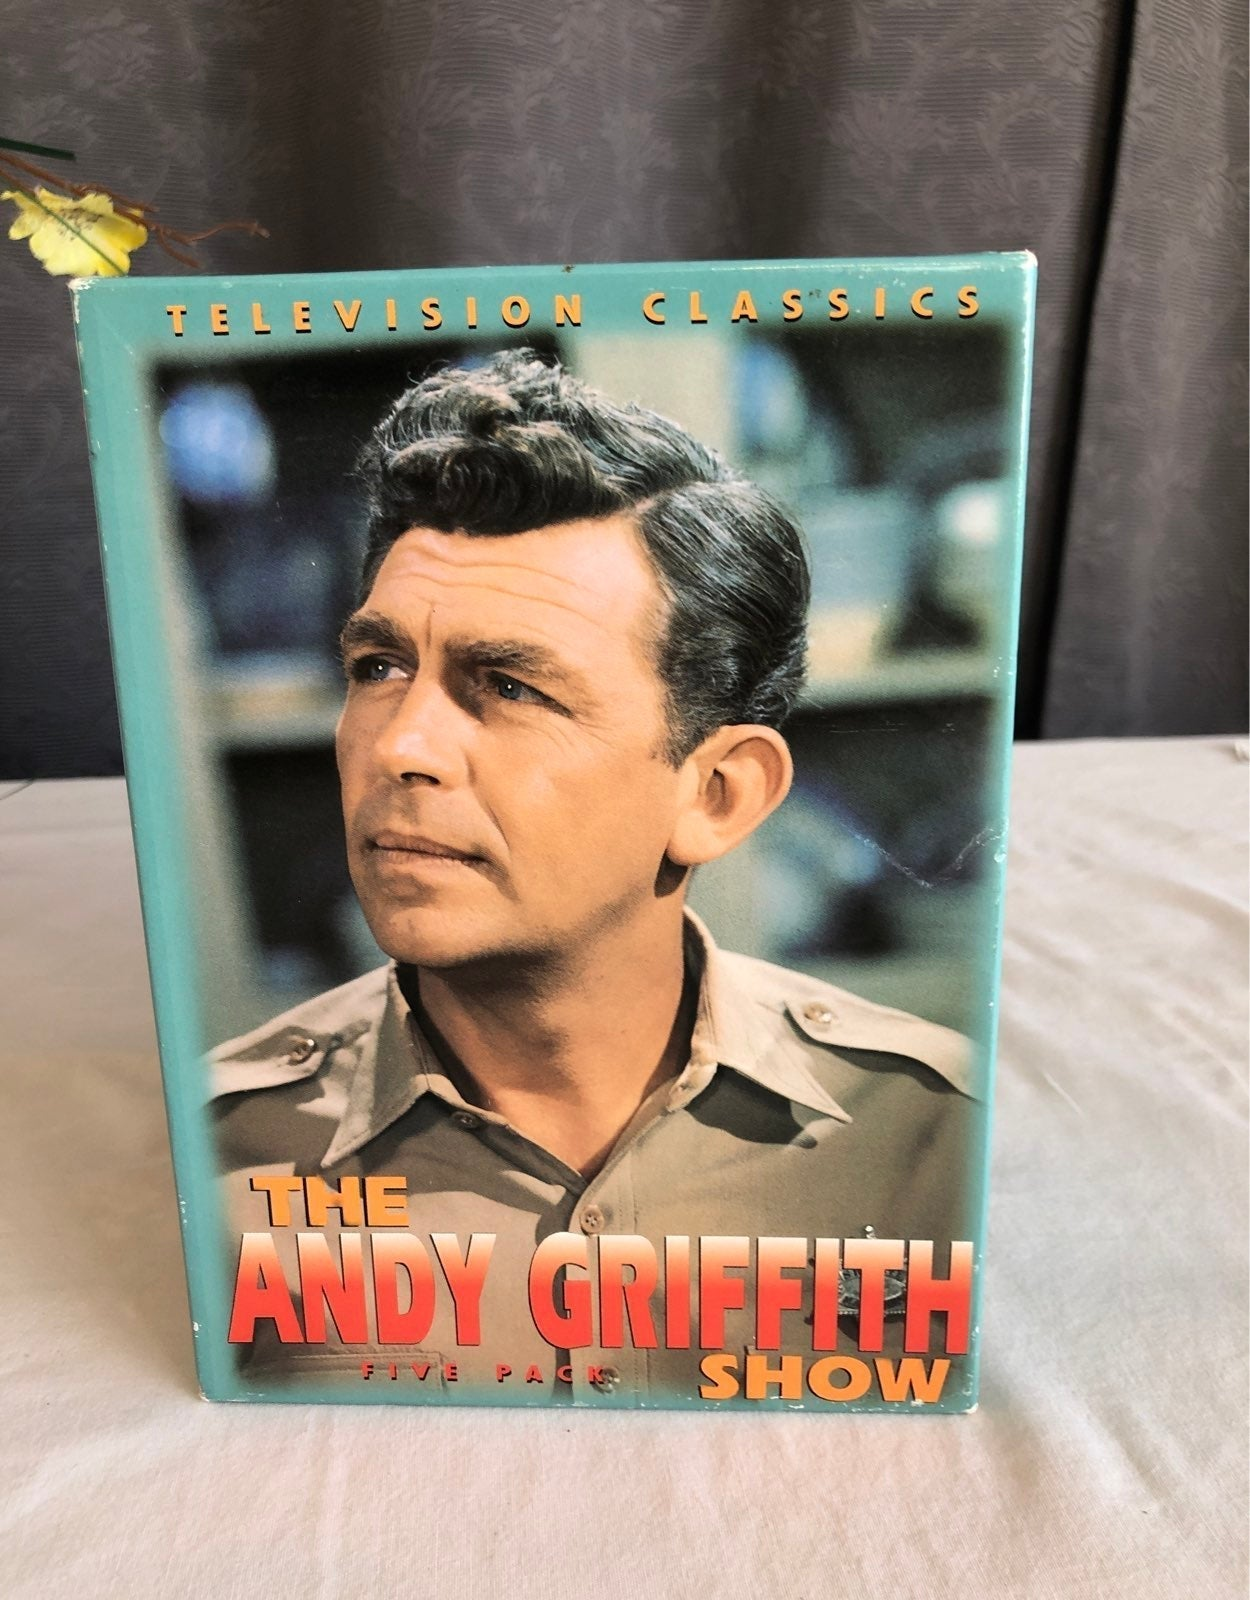 Classic The Andy Griffith show 5 pack VH